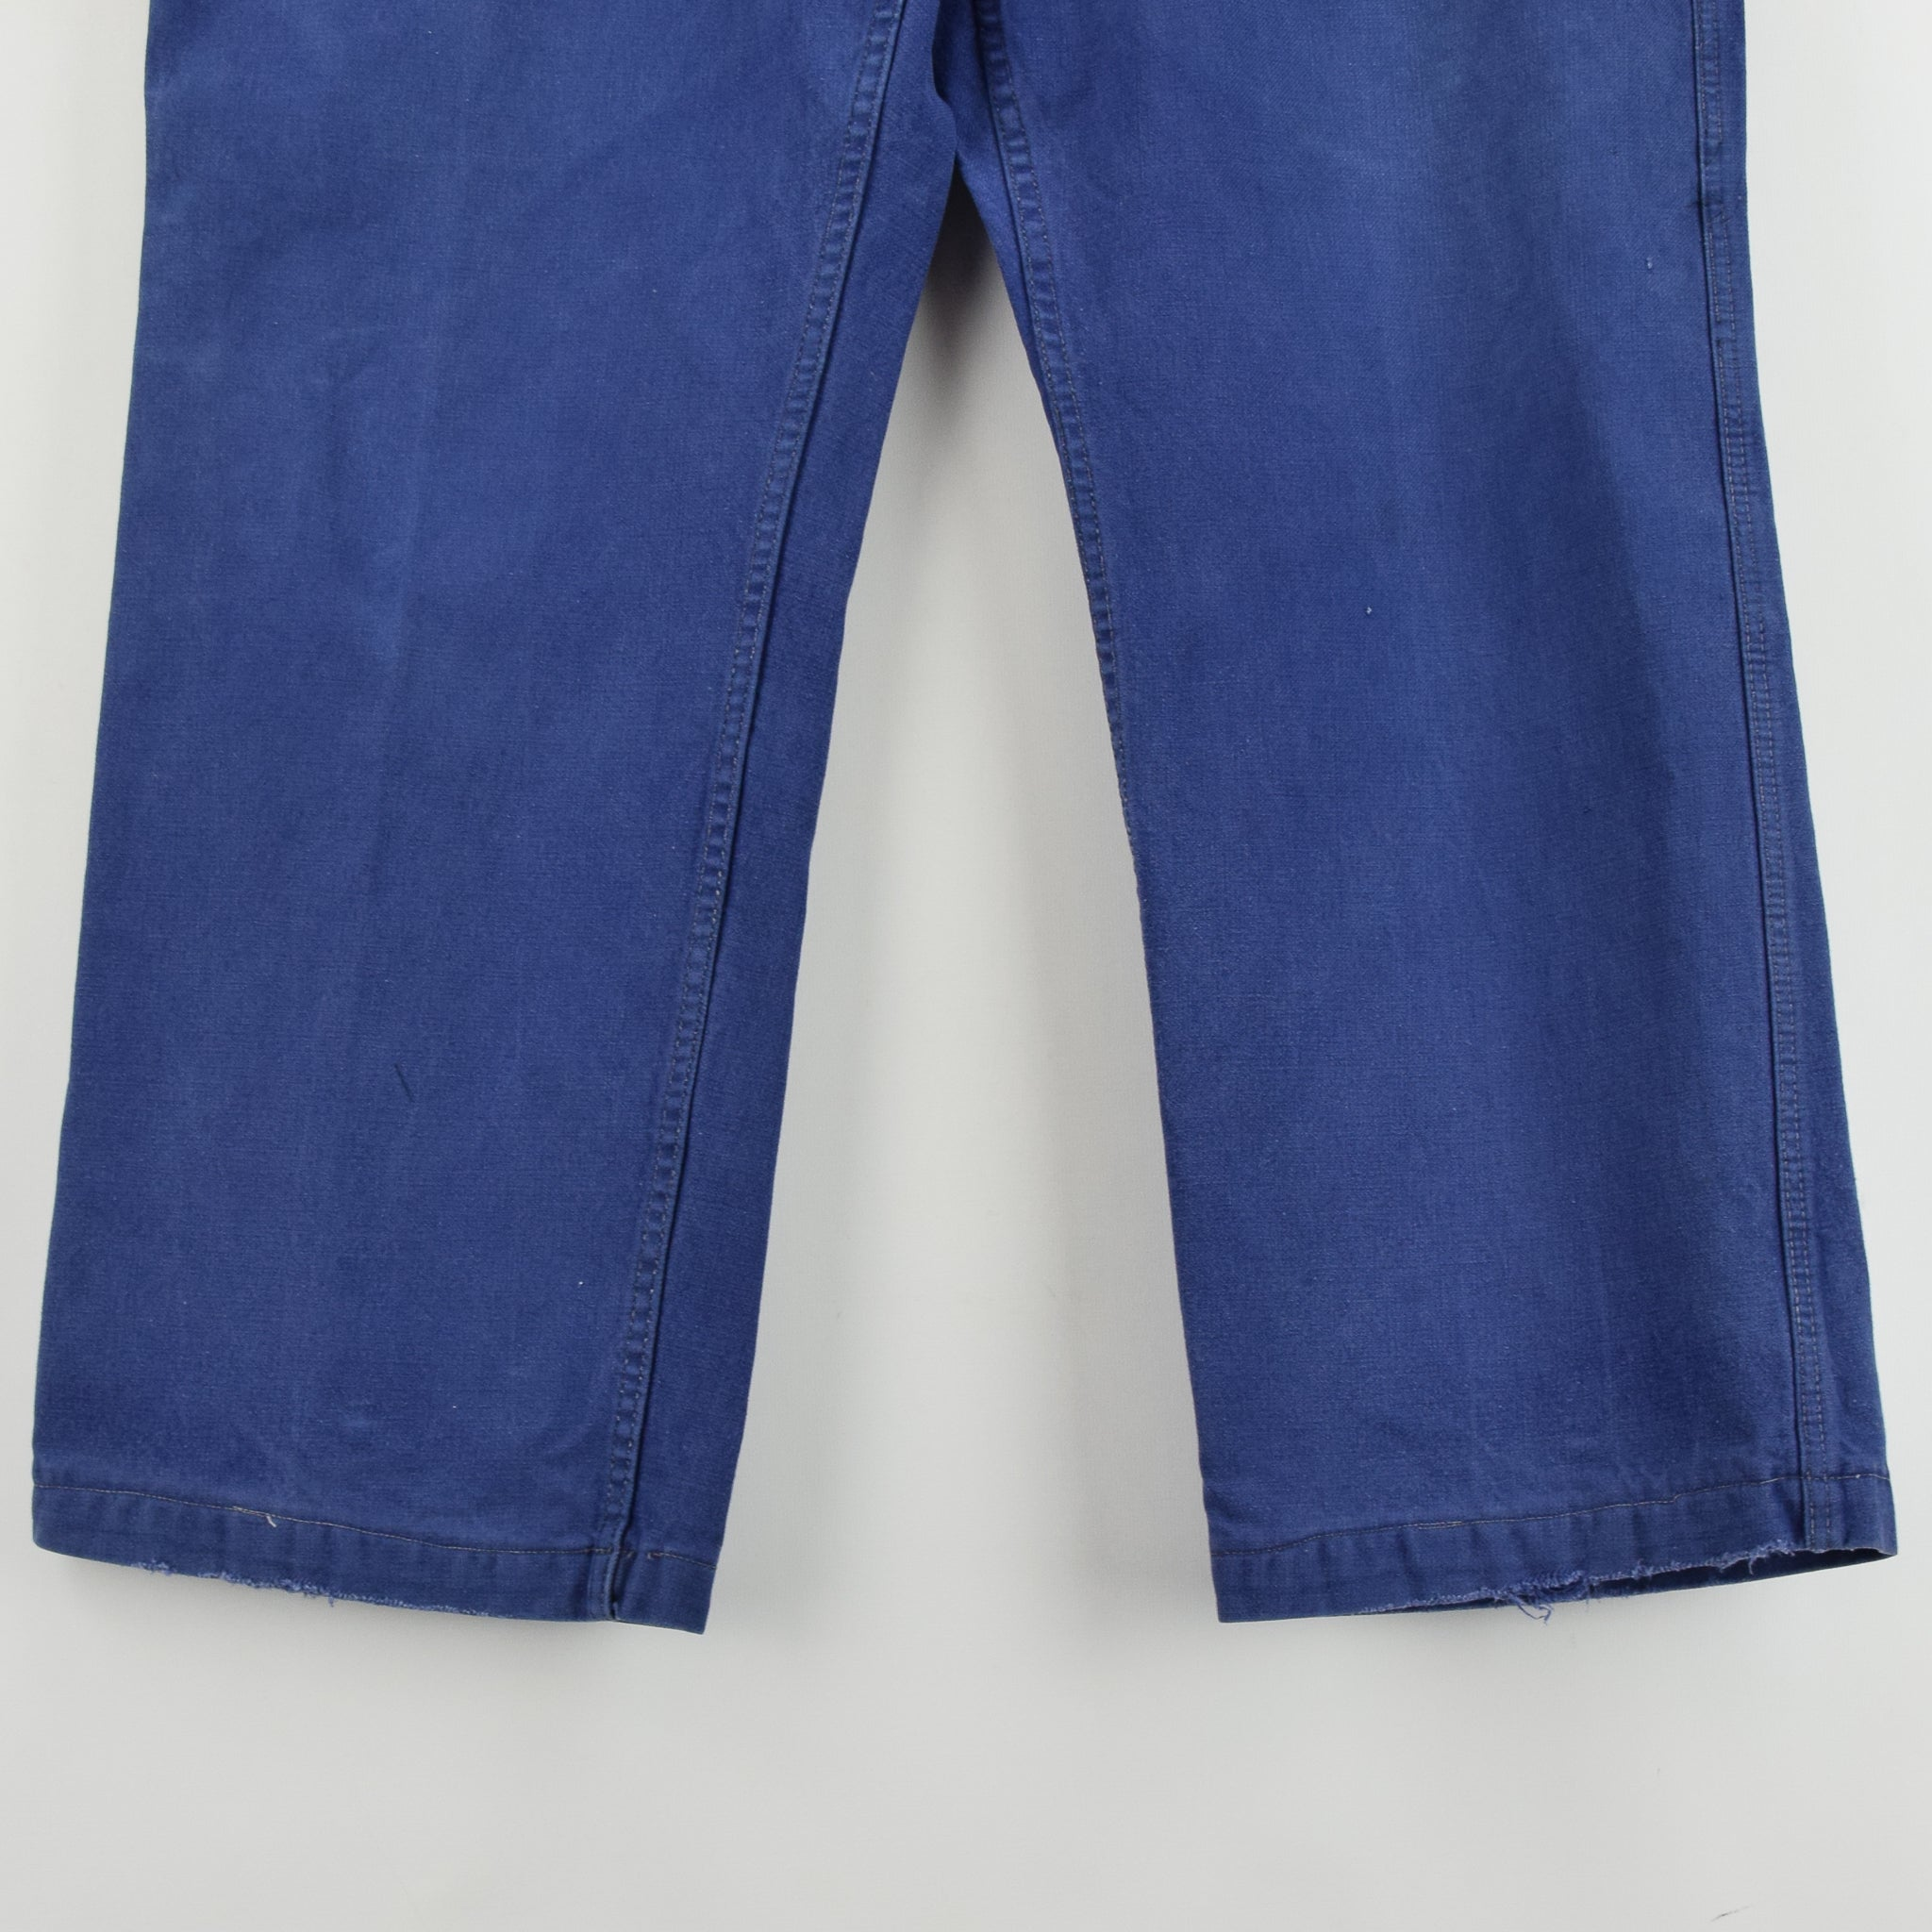 Vintage Workwear Blue Vetra French Work Utility Trousers France Made 36 W 28 L front hem